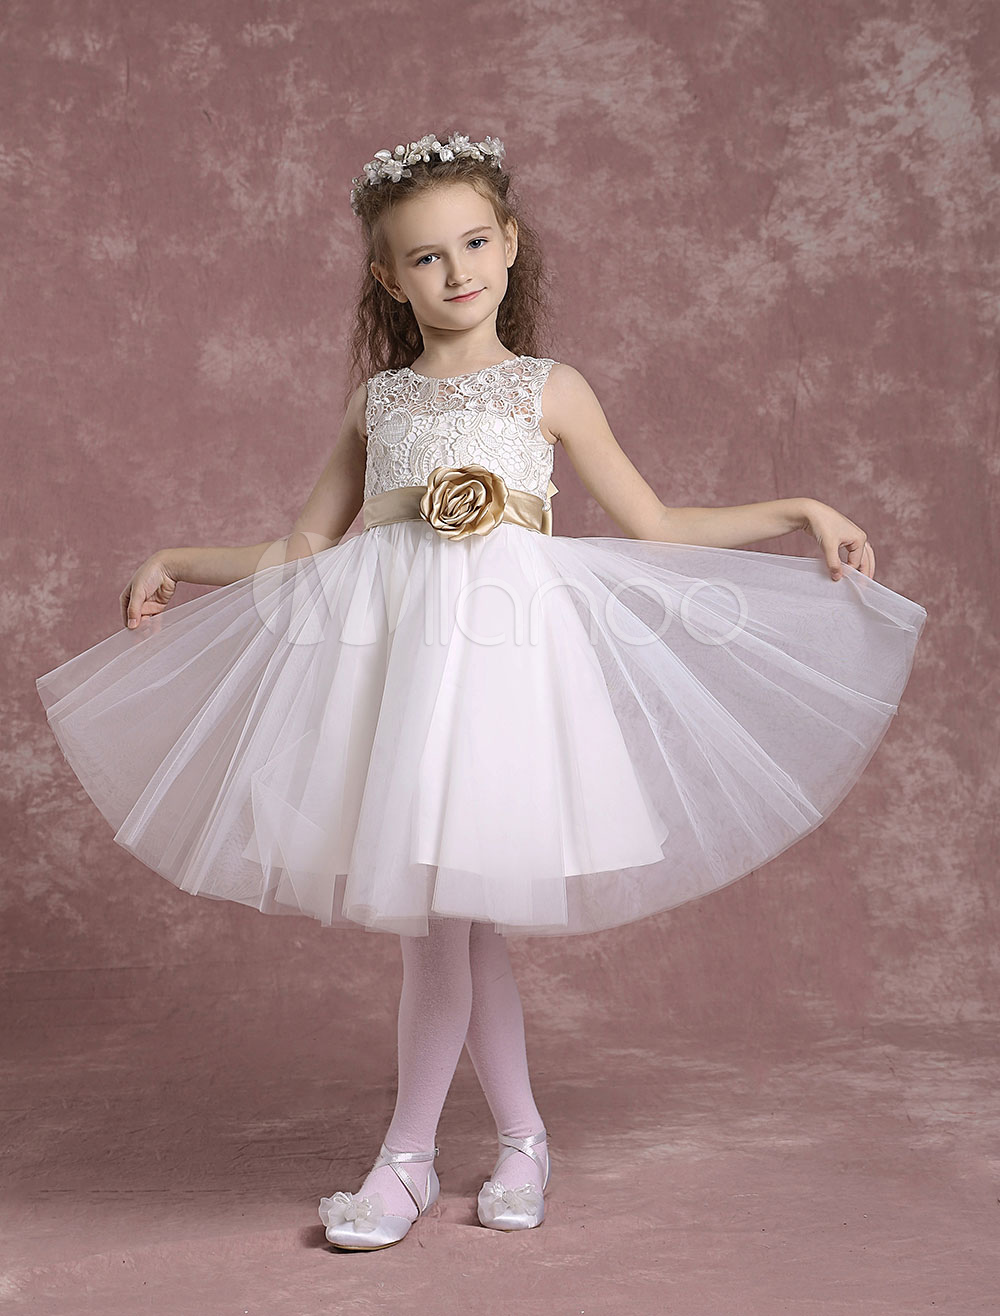 Buy Tulle Flower Girl Dresses Ivory Lace Pageant Dresses Toddler's Zipper A Line Knee Length Formal Dresses With Flower Sash for $68.39 in Milanoo store